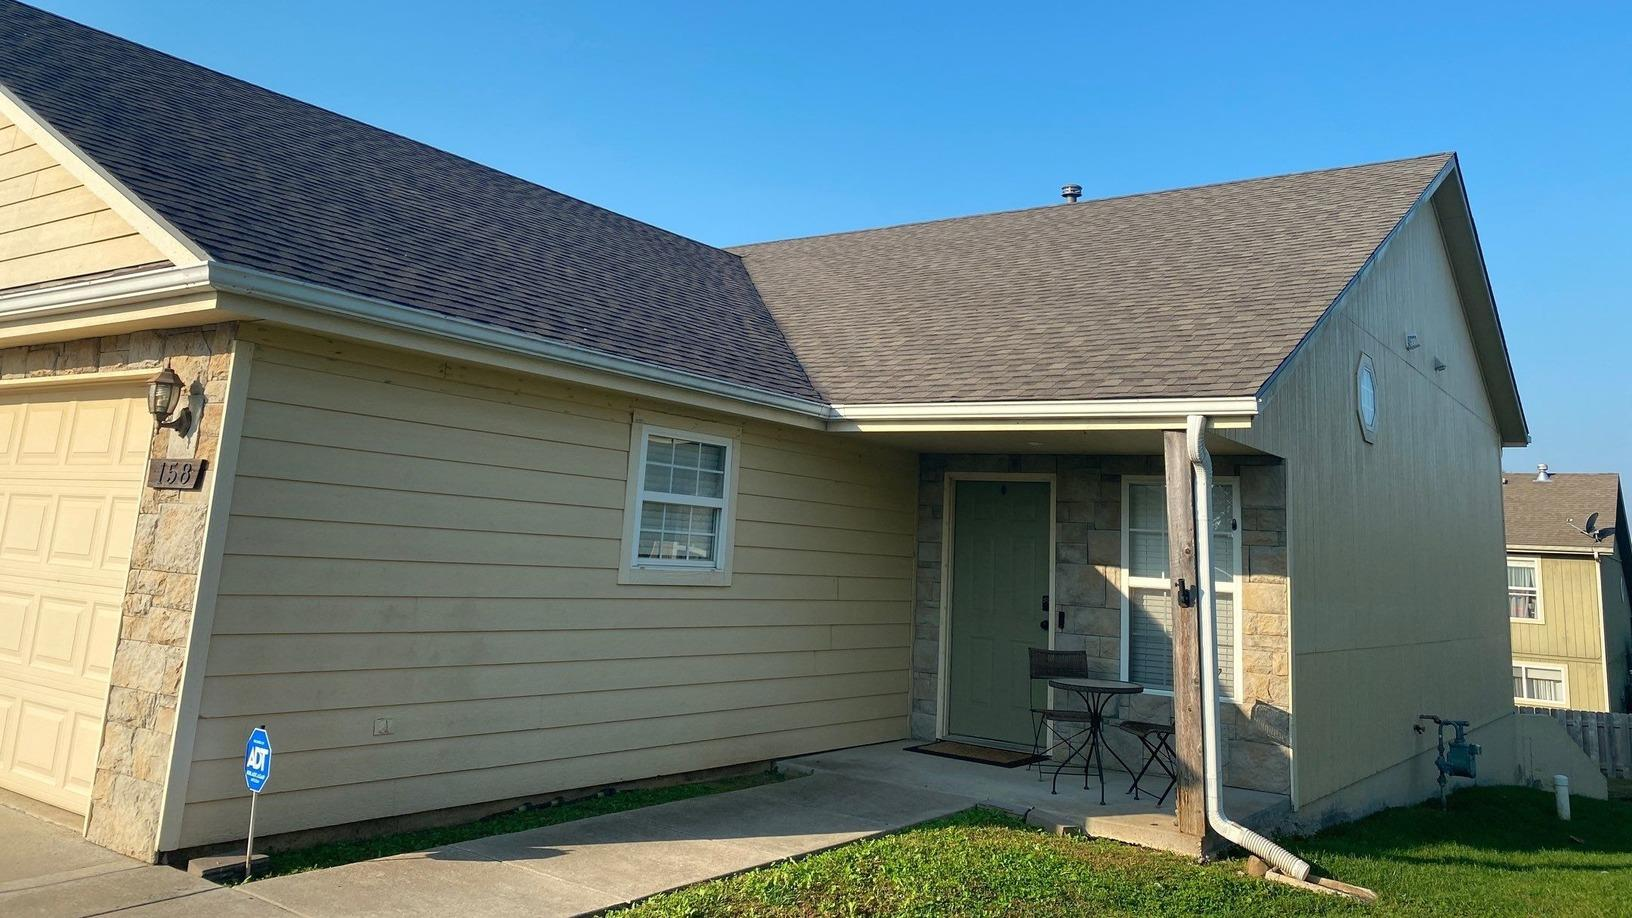 Leaking Roof in Tonganoxie, KS is Repaired by Arrow Renovation - After Photo